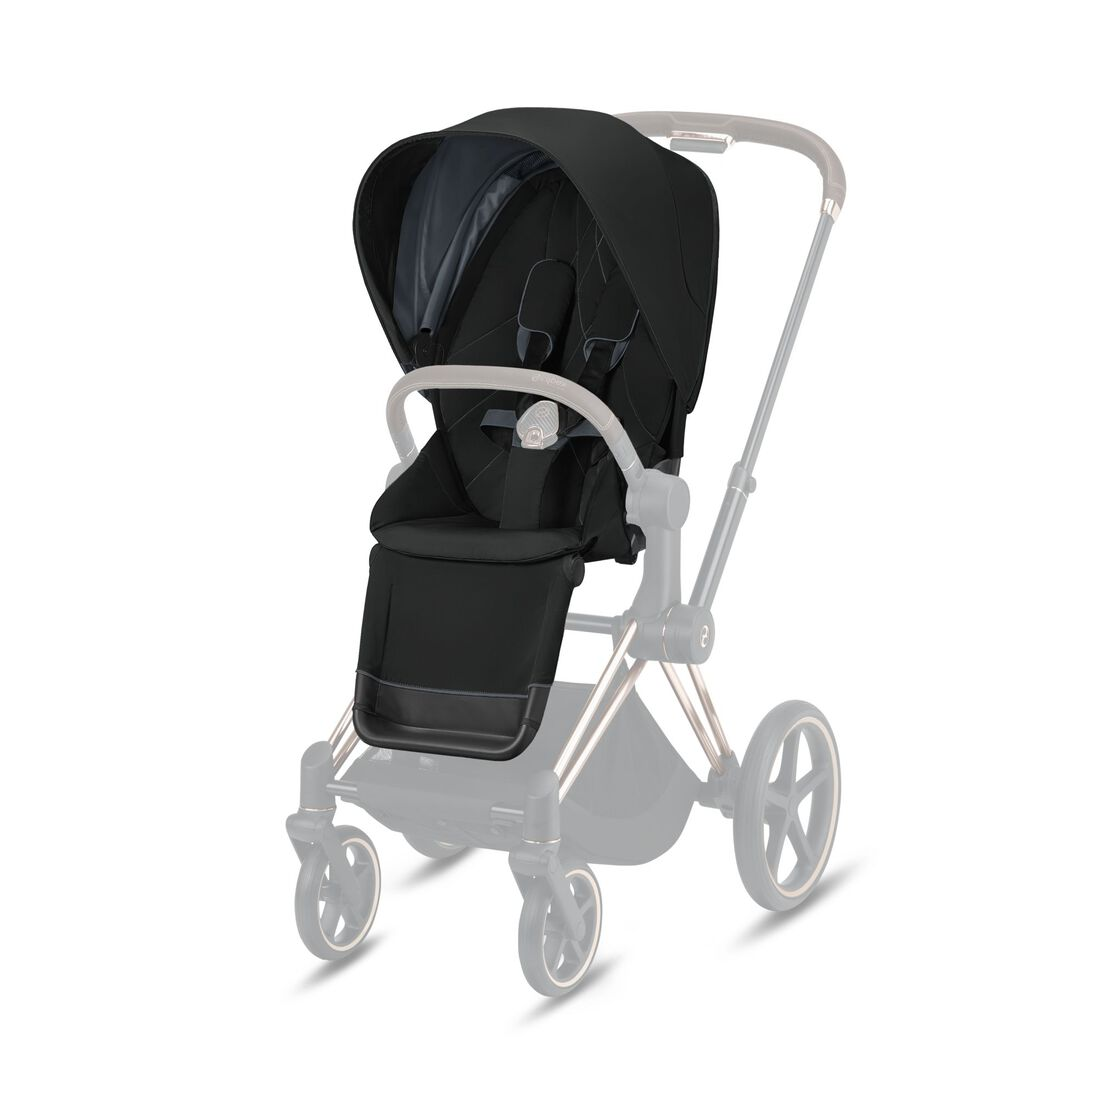 CYBEX Configure e-Priam Set: Frame, Lux Carry Cot, Cloud Z i-Size, Seat Pack in  large image number 8